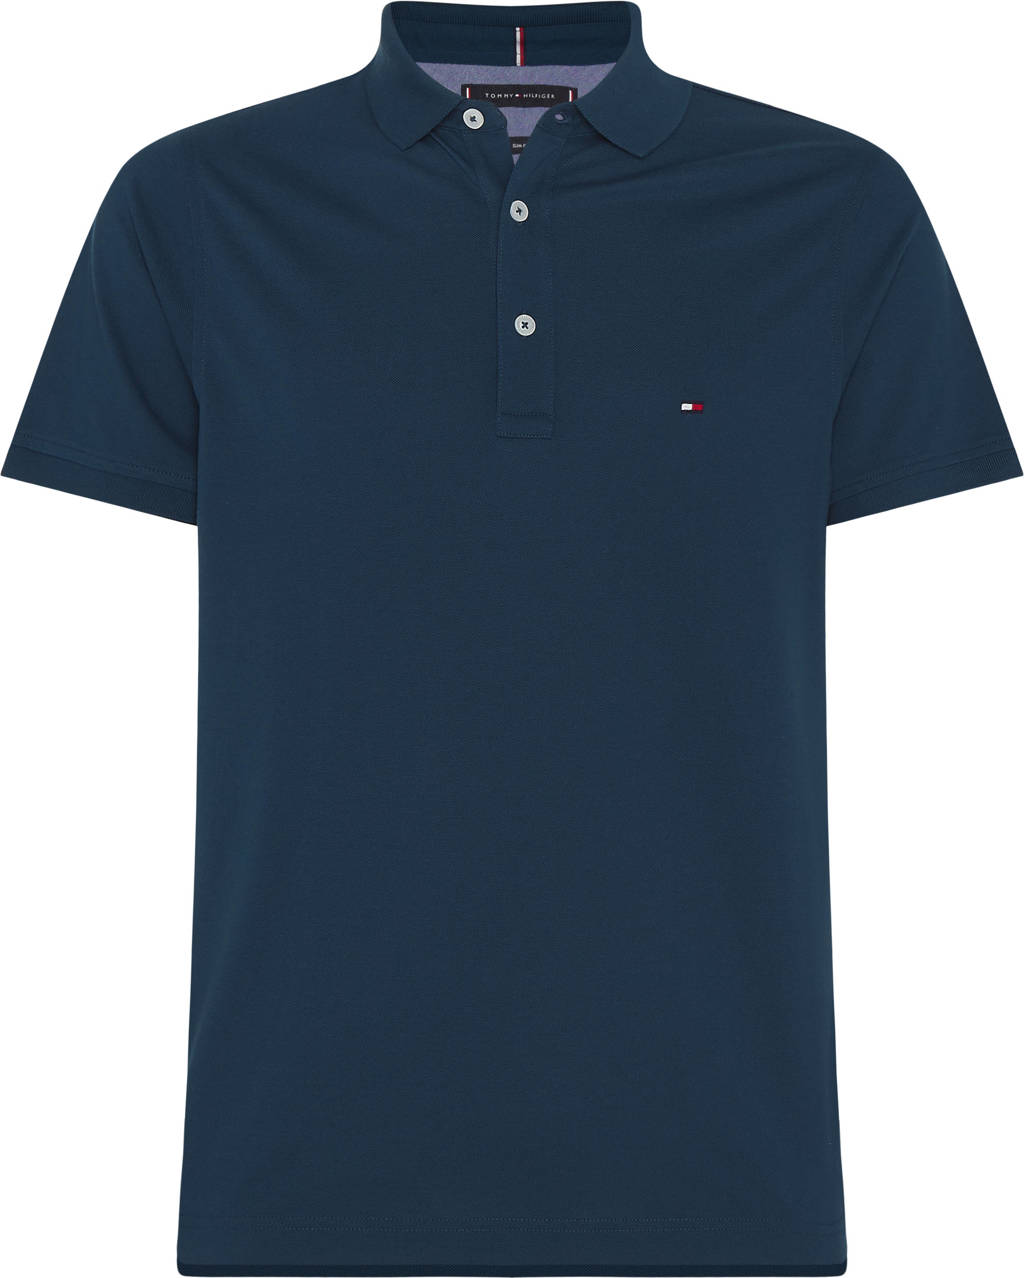 Tommy Hilfiger slim fit polo c74 lakeside, C74 Lakeside